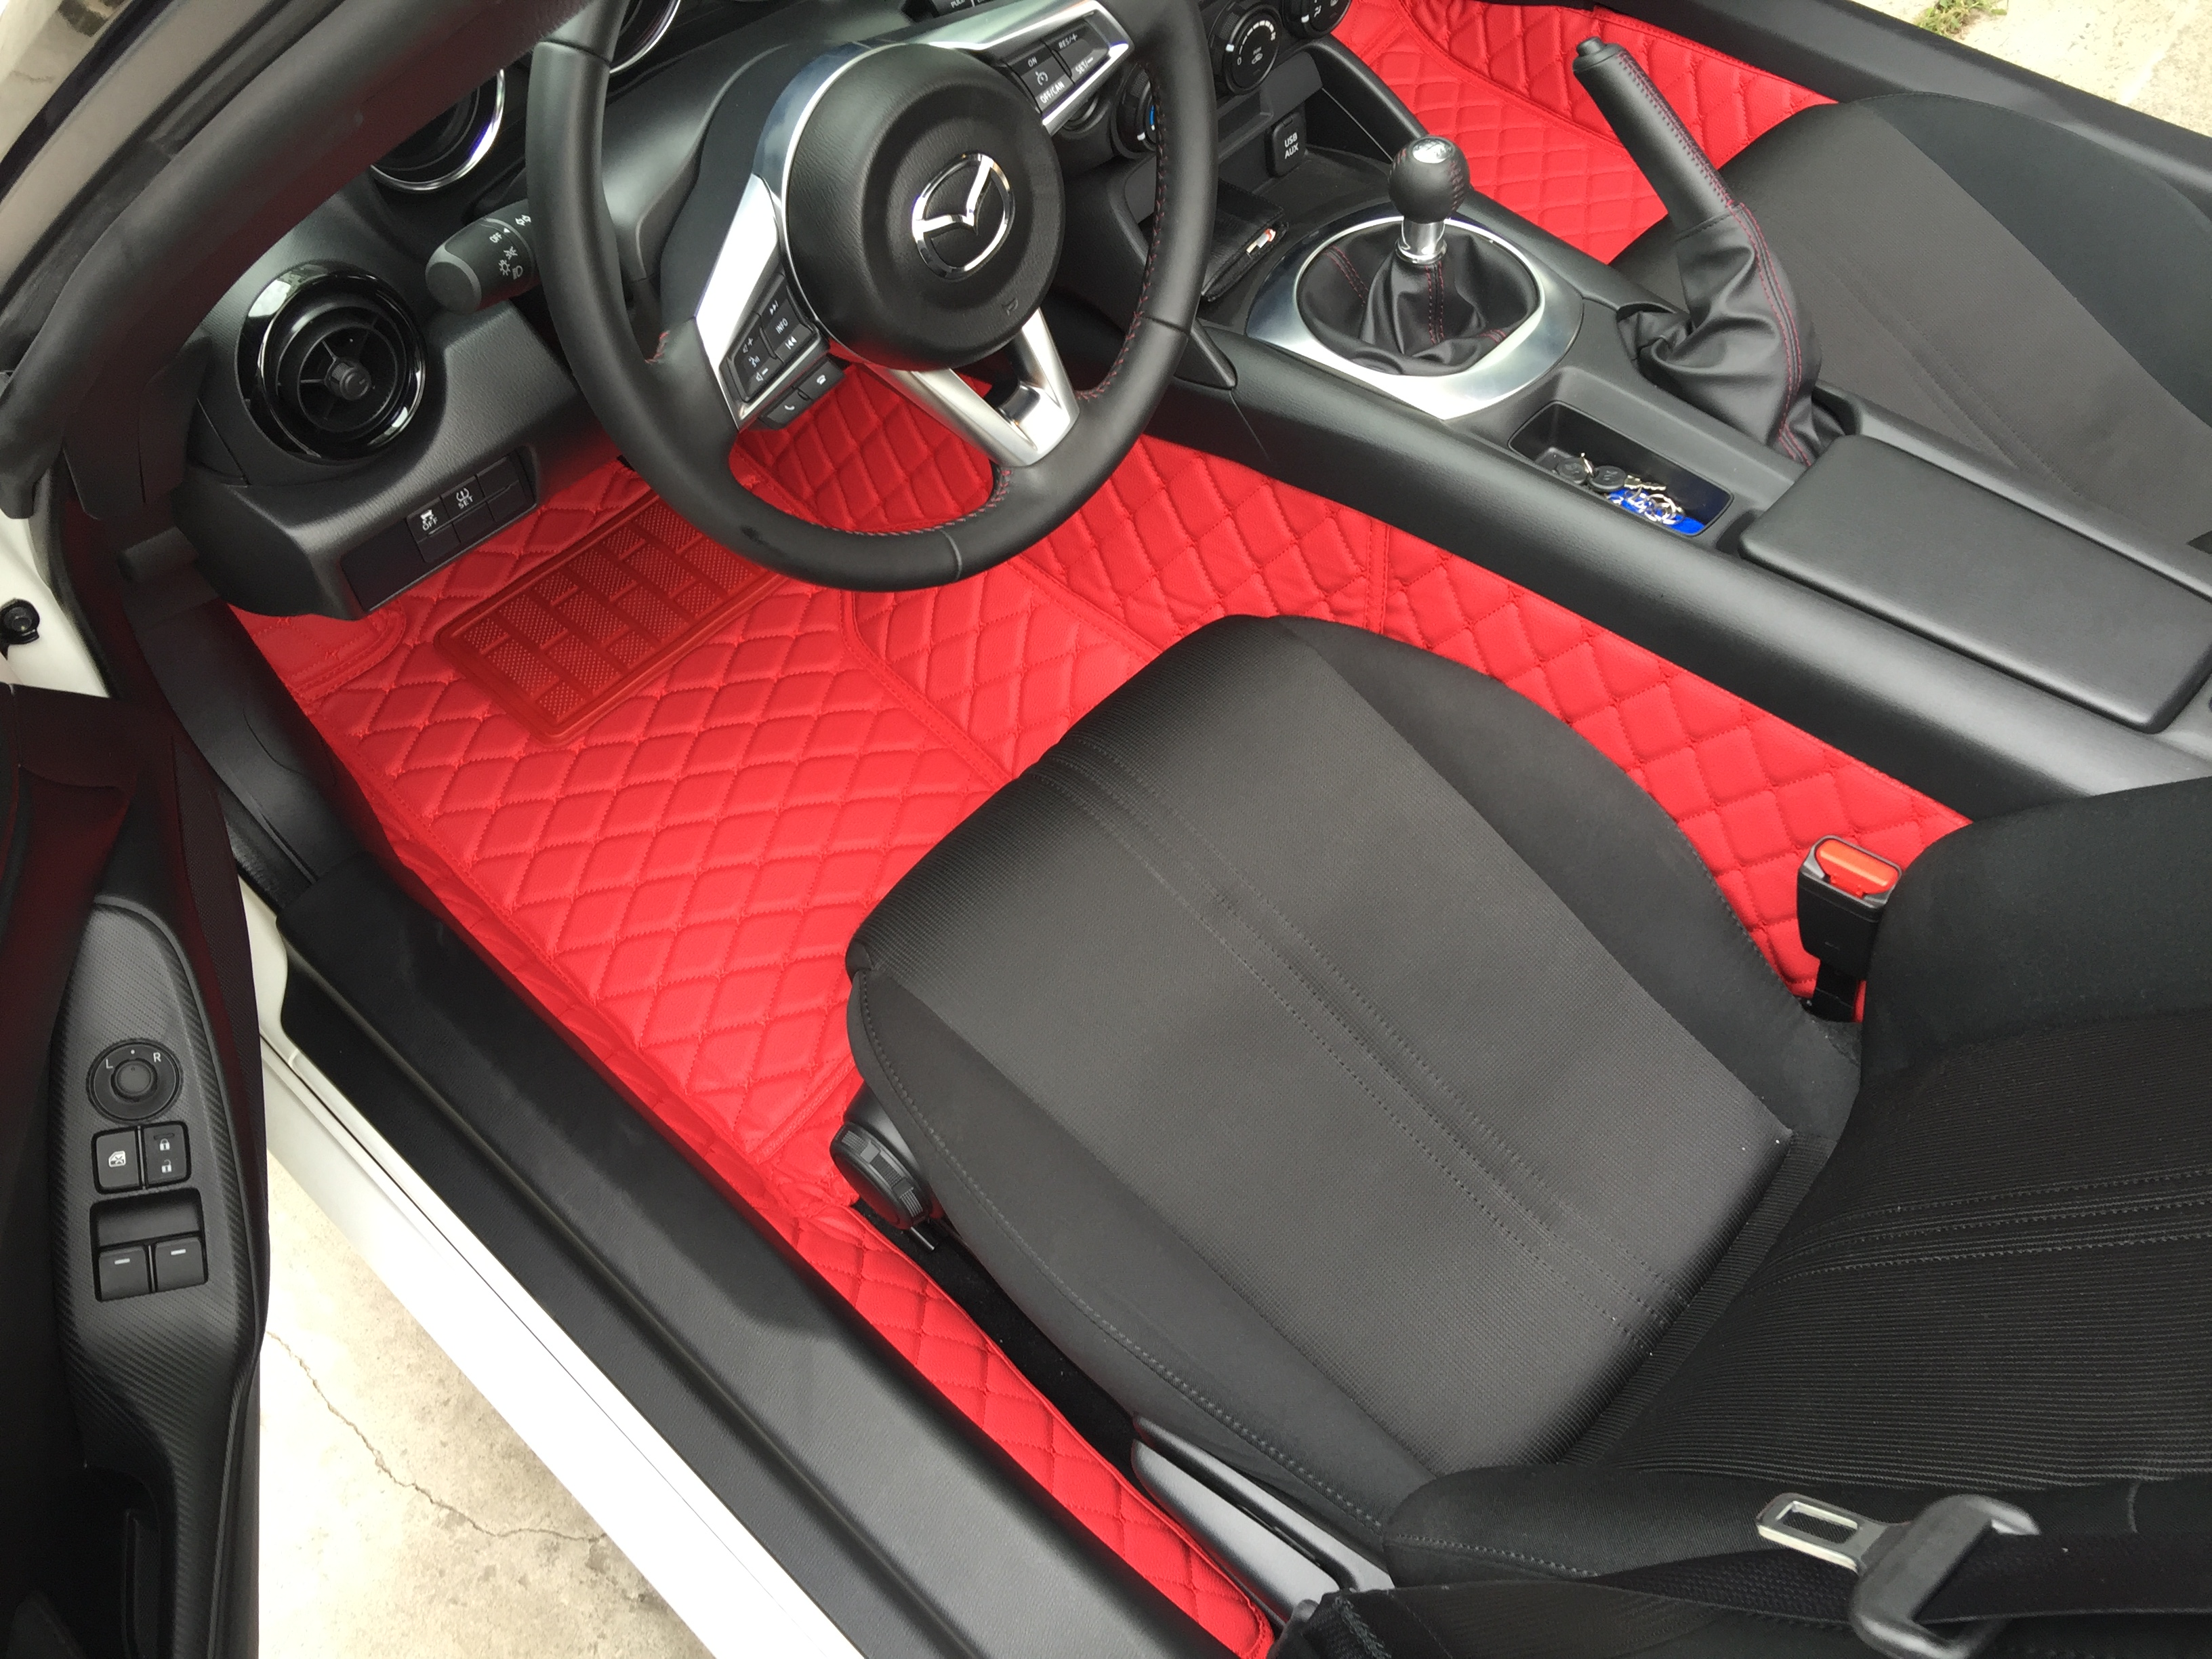 Group Buy 2 Quilted Leather Trunk Liner And Floor Mats For Miata Nd